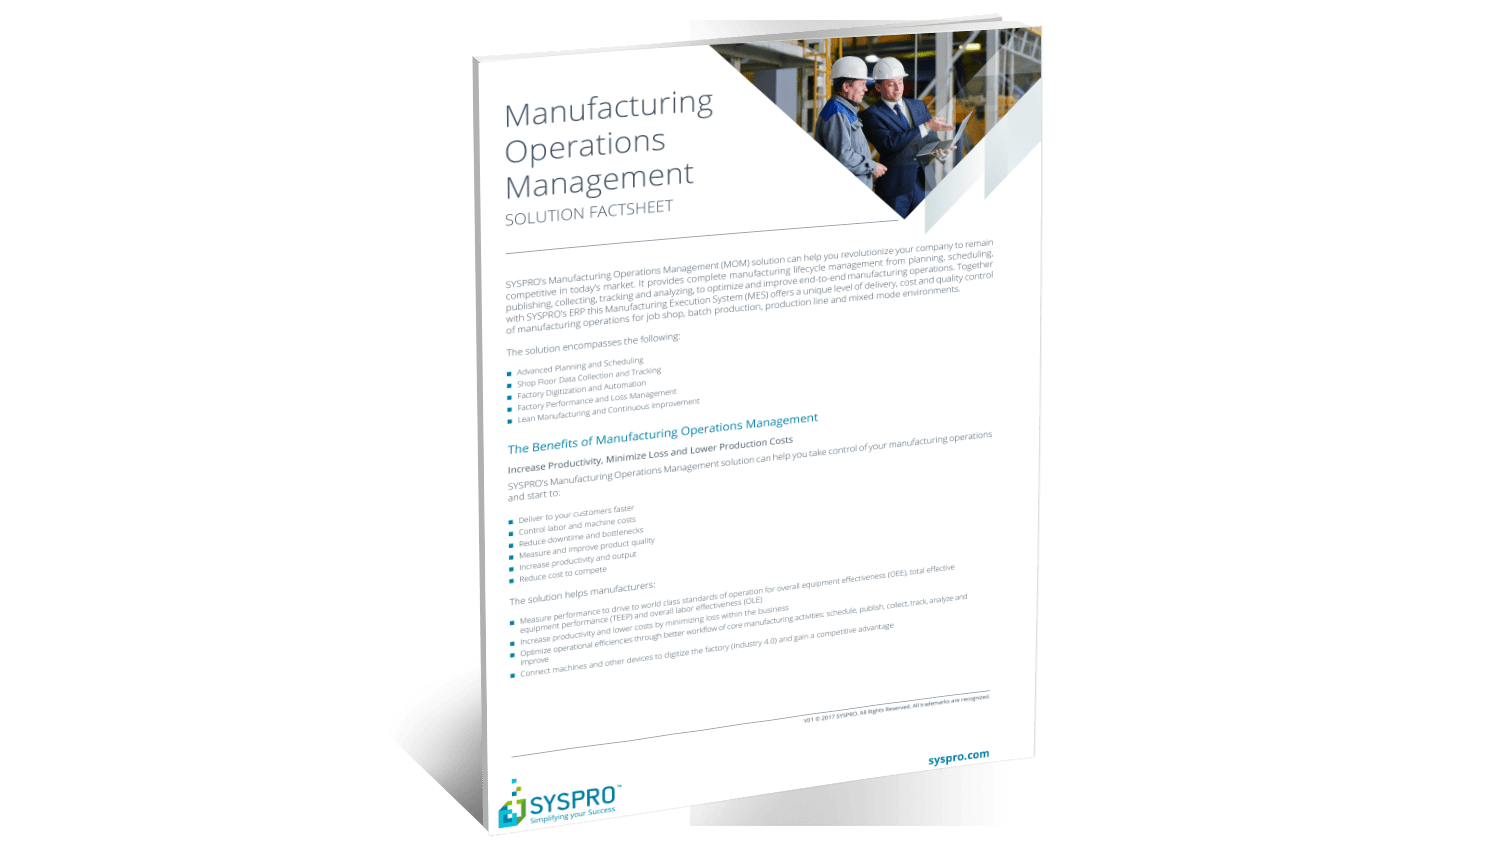 SYSPRO Manufacturing Operations Management